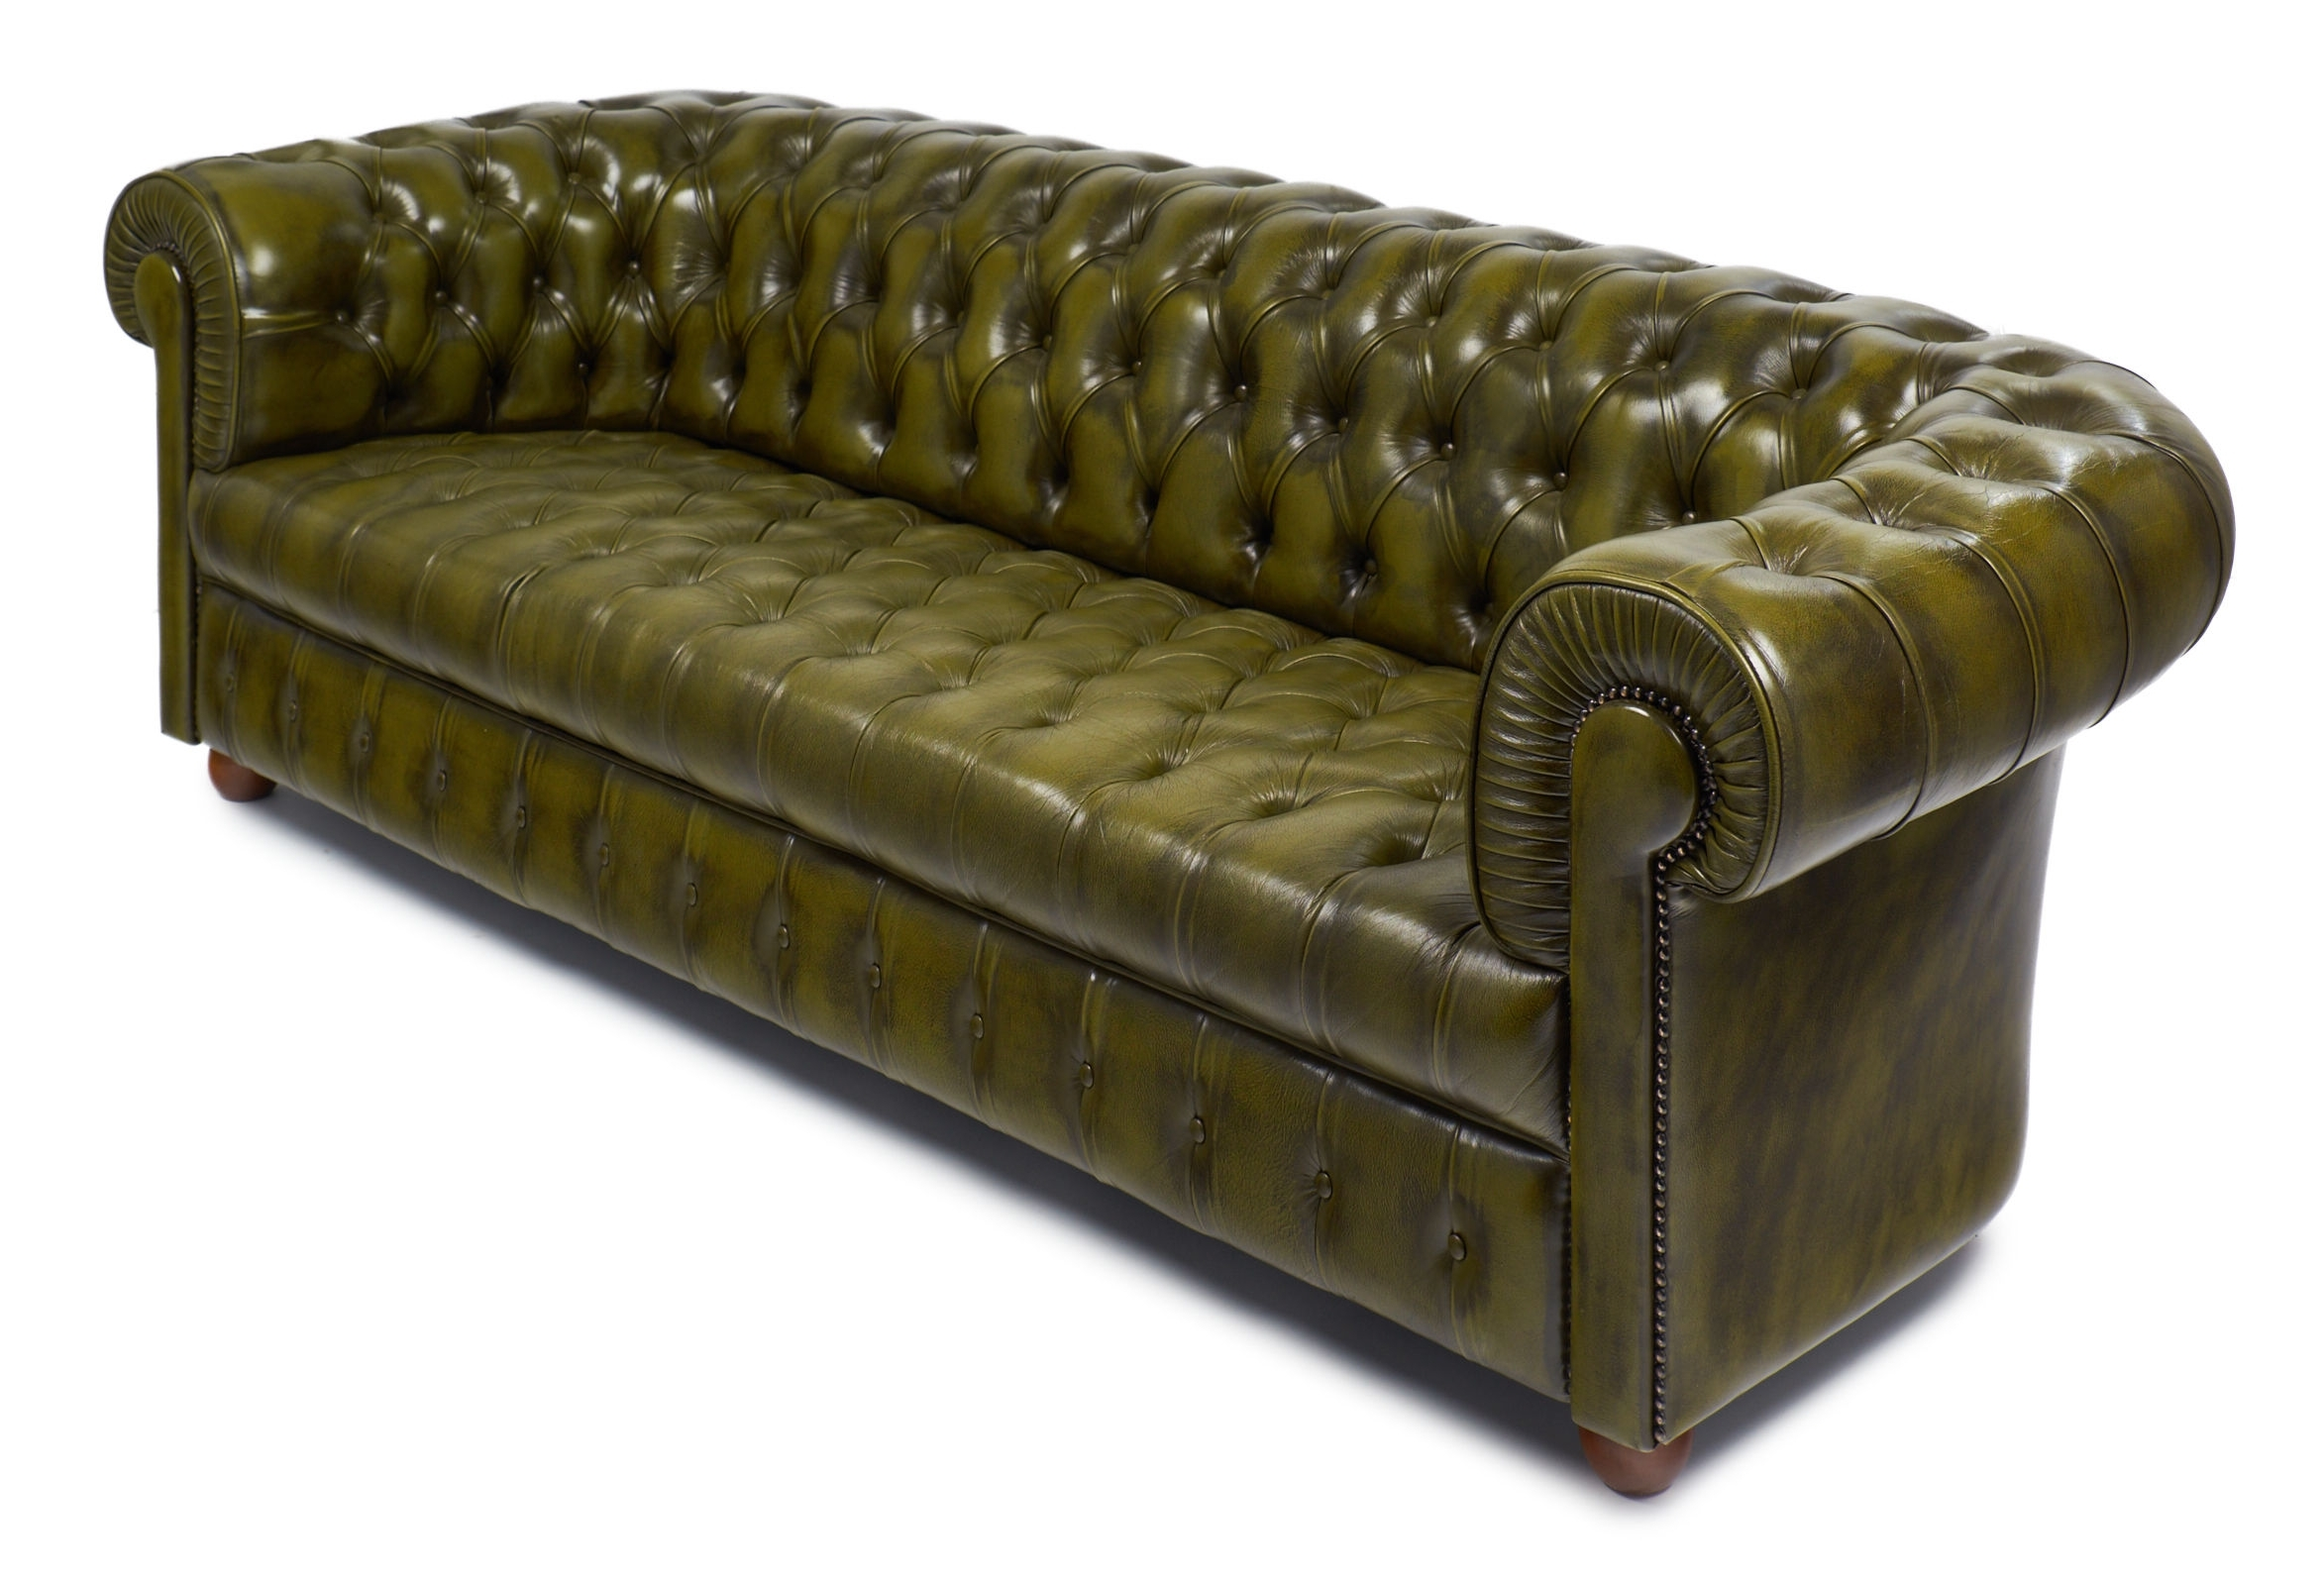 Vintage Green Leather English Chesterfield Sofa – Jean Marc Fray For Famous Vintage Chesterfield Sofas (Gallery 8 of 20)